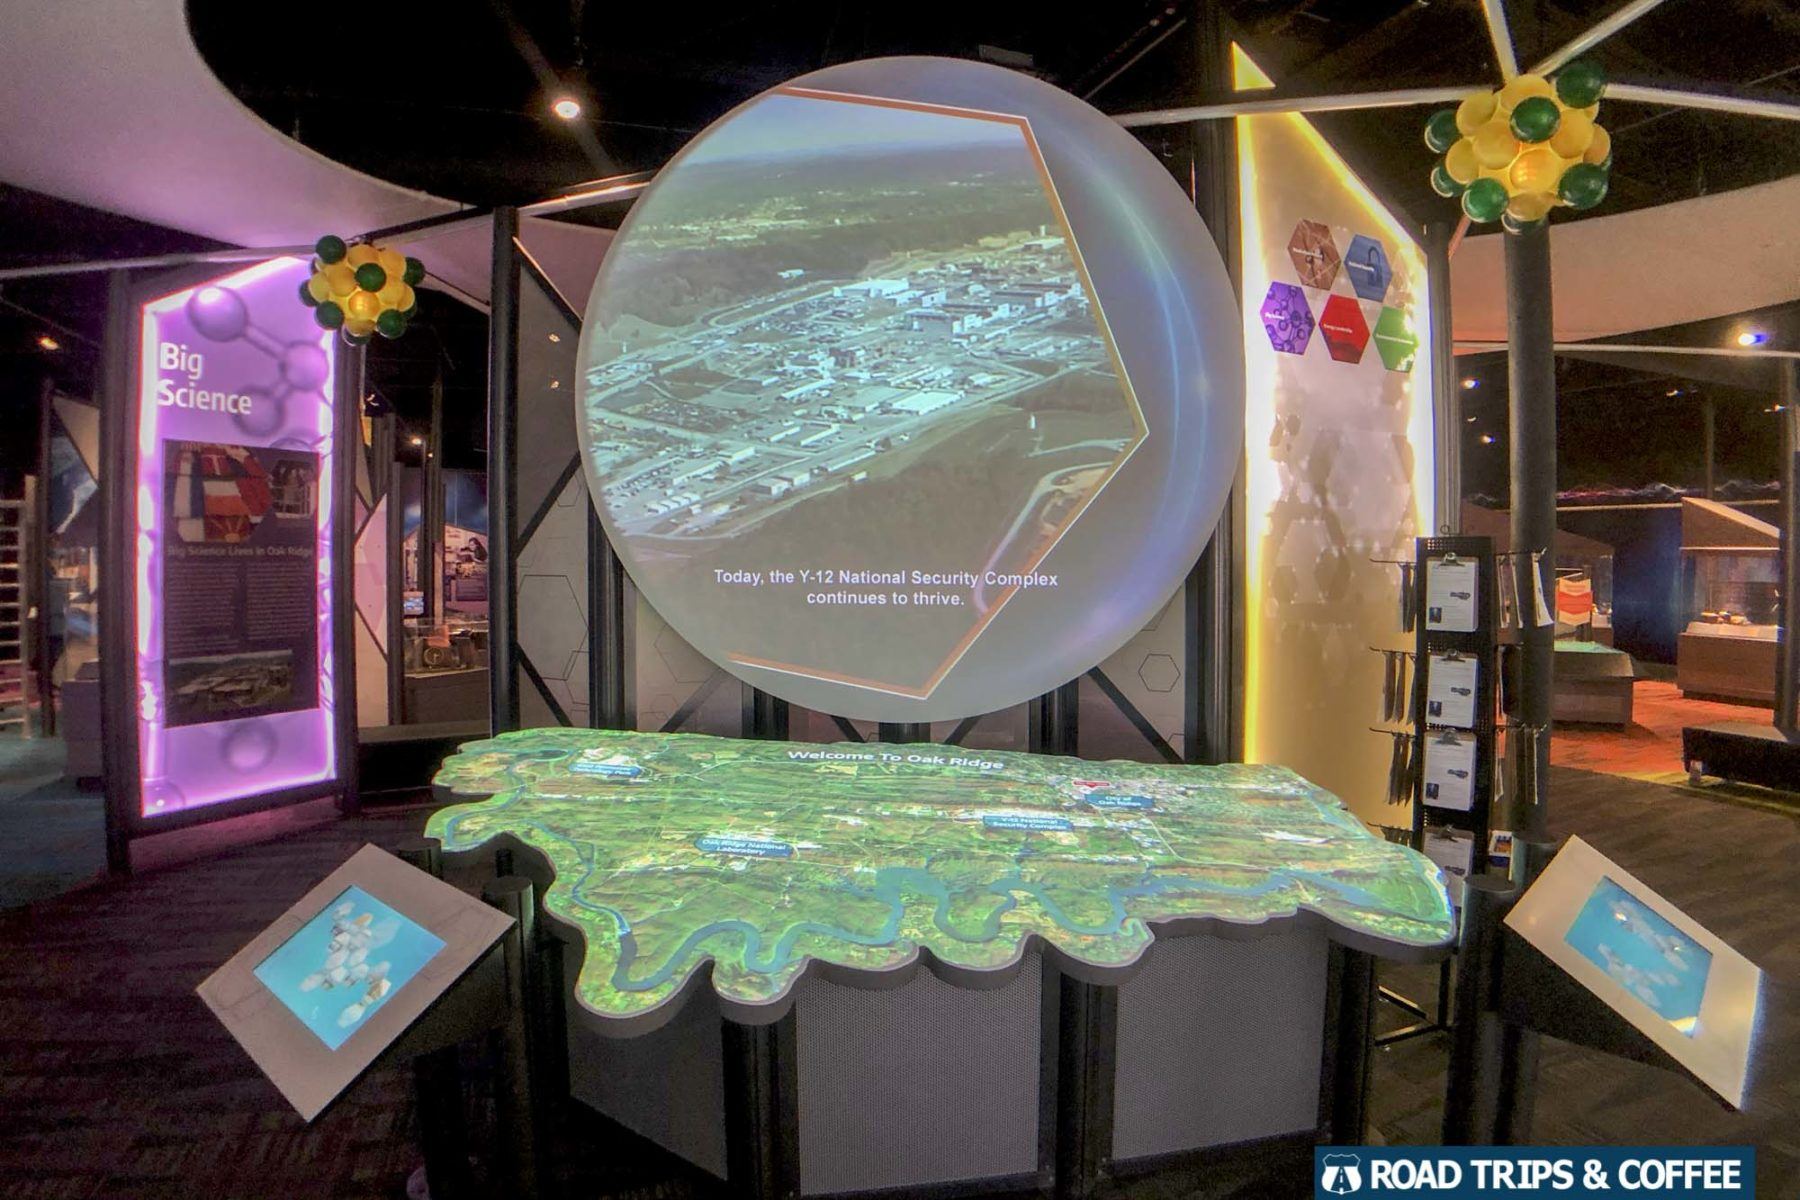 Large digital displays inside the American Museum of Science and Energy in Oak Ridge, Tennessee